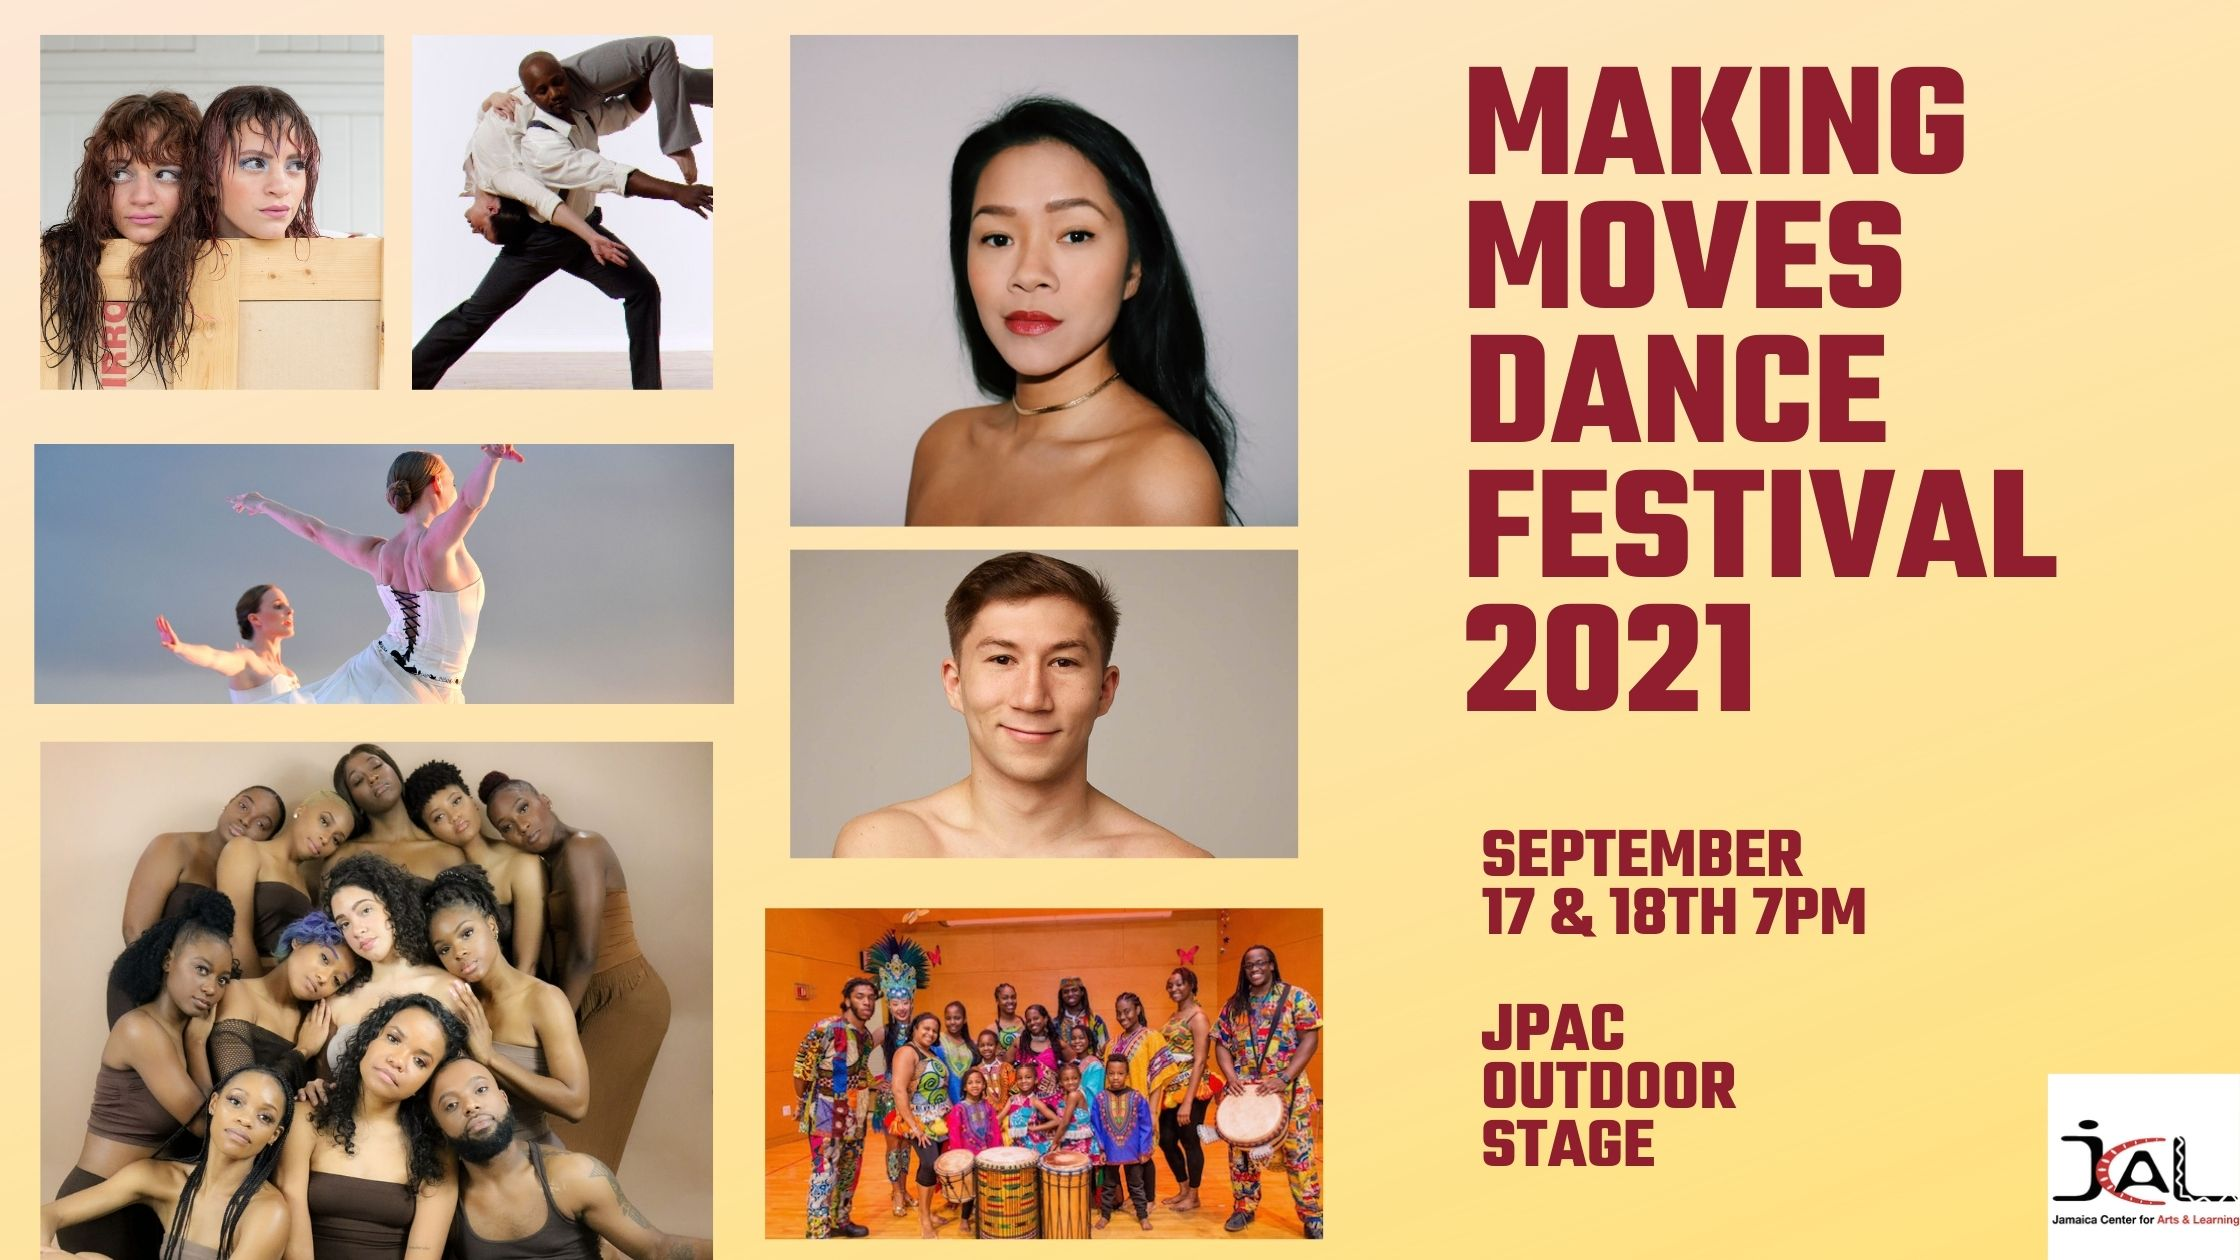 Making Moves Dance Festival 2021 at Jamaica Performing Arts Center